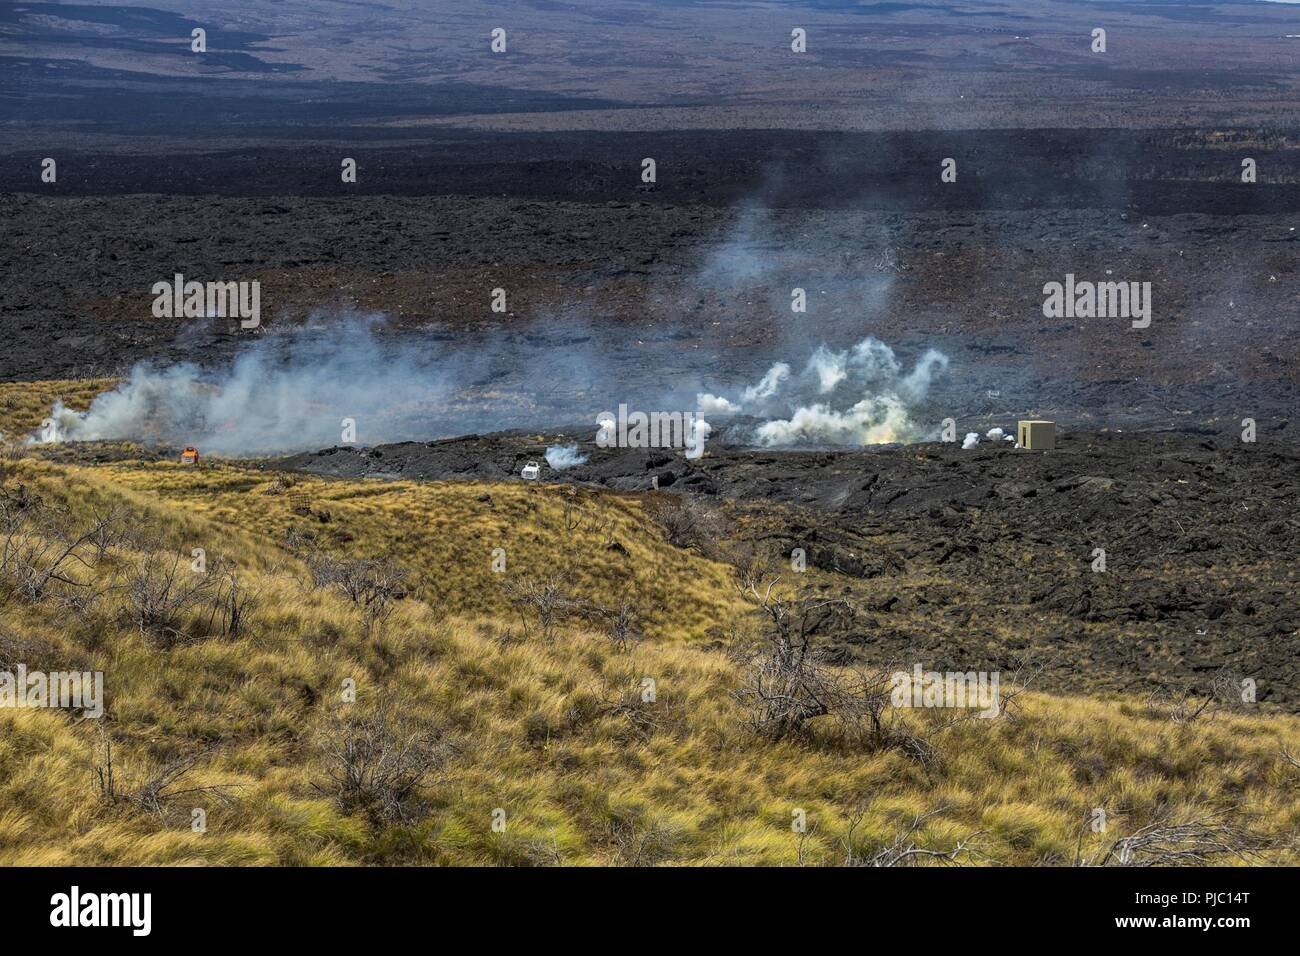 The Collateral Damage Of Testing >> Pohakuloa Training Area Hawaii July 16 2018 81mm Experimental